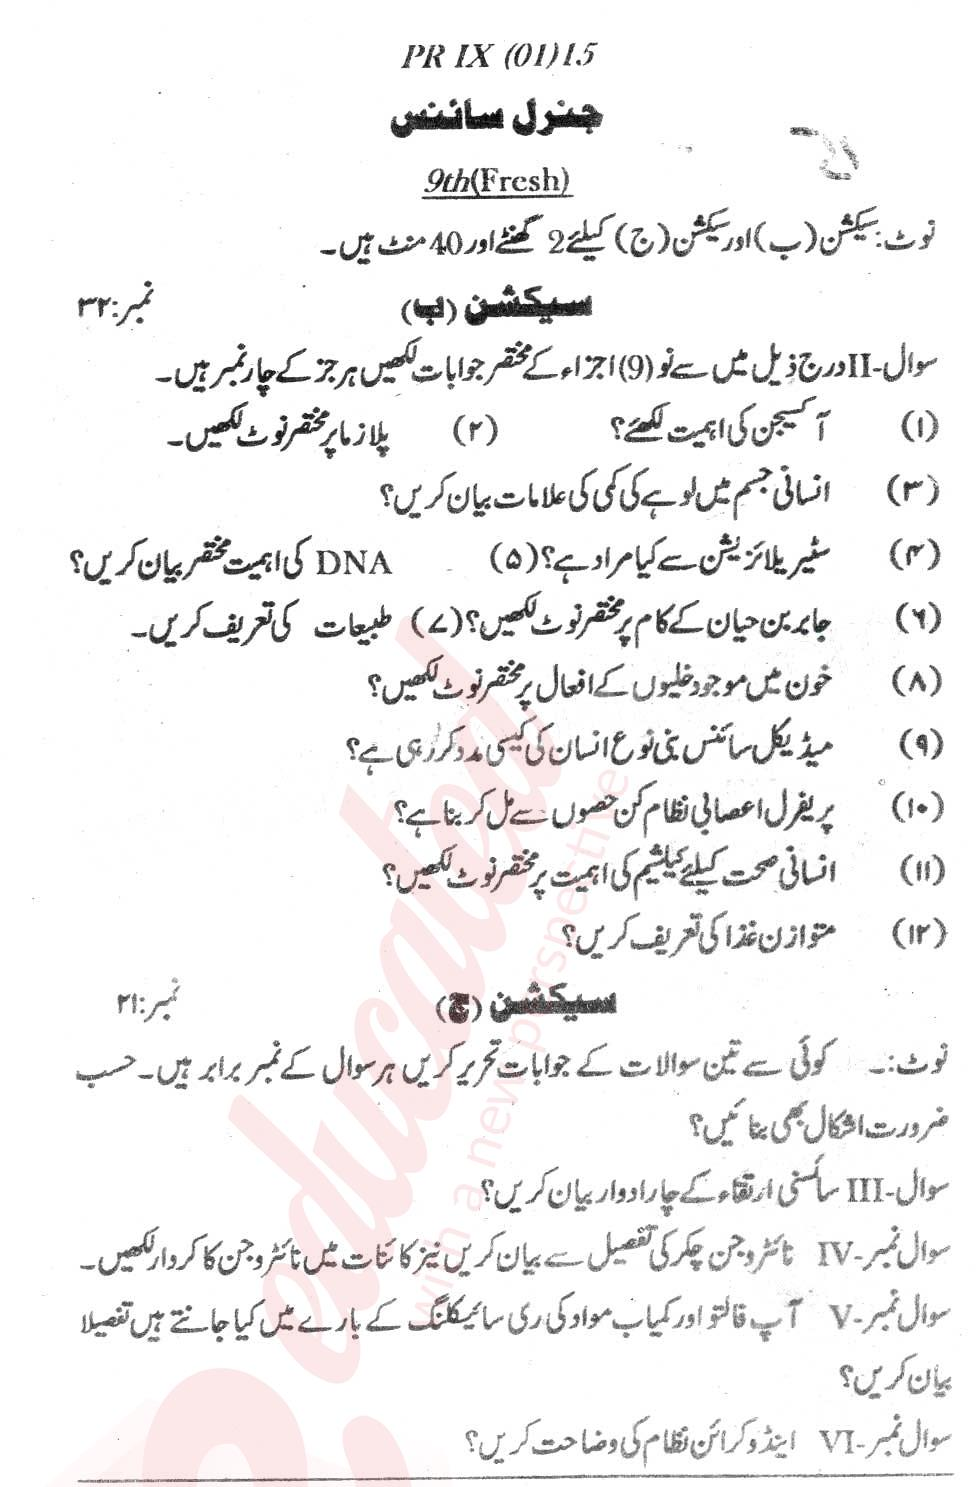 General Science 9th Urdu Medium Past Paper Group 1 BISE Mardan 2015